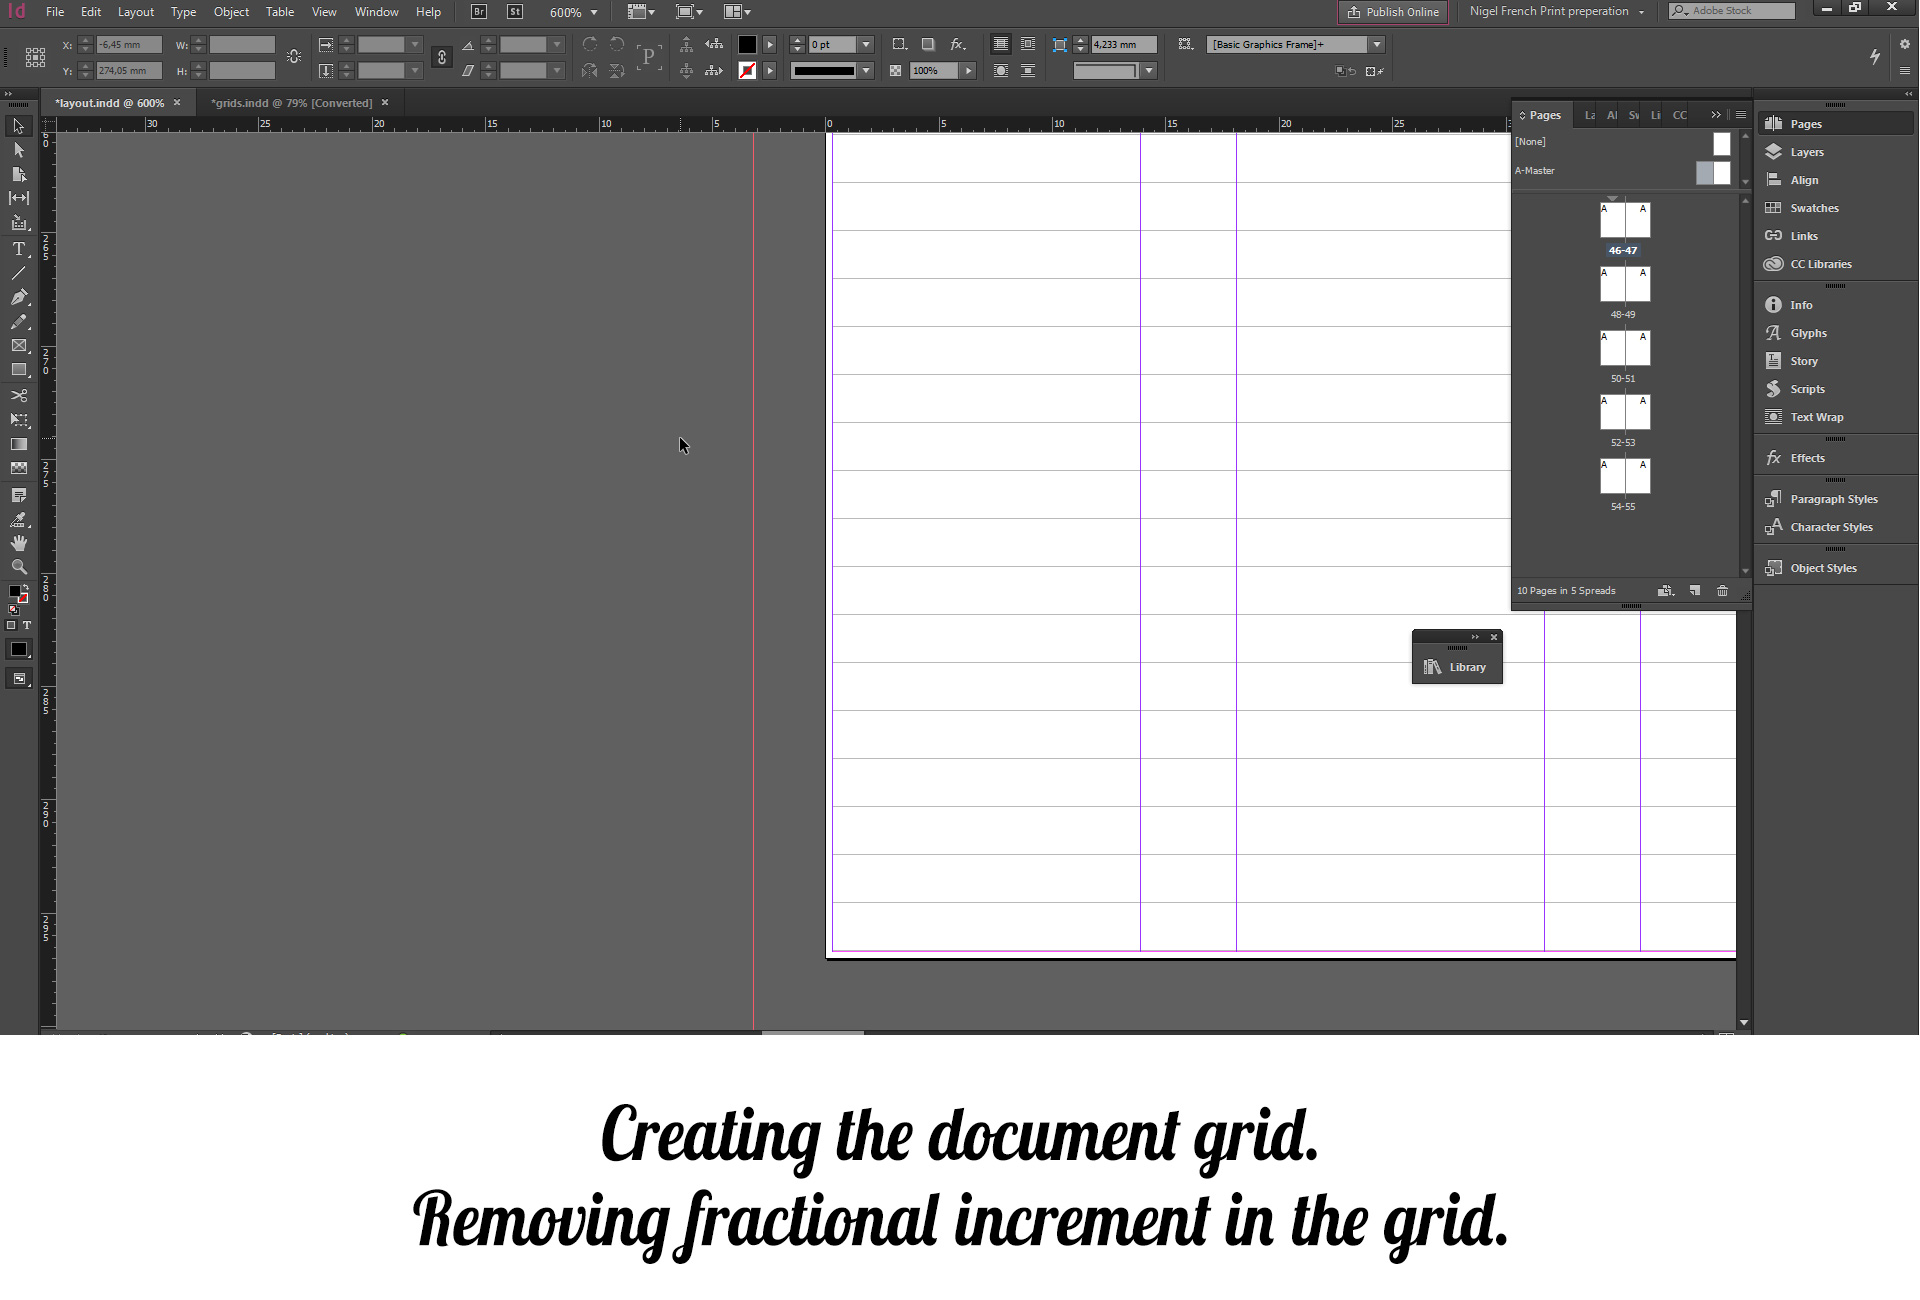 creating-the-document-grid_01